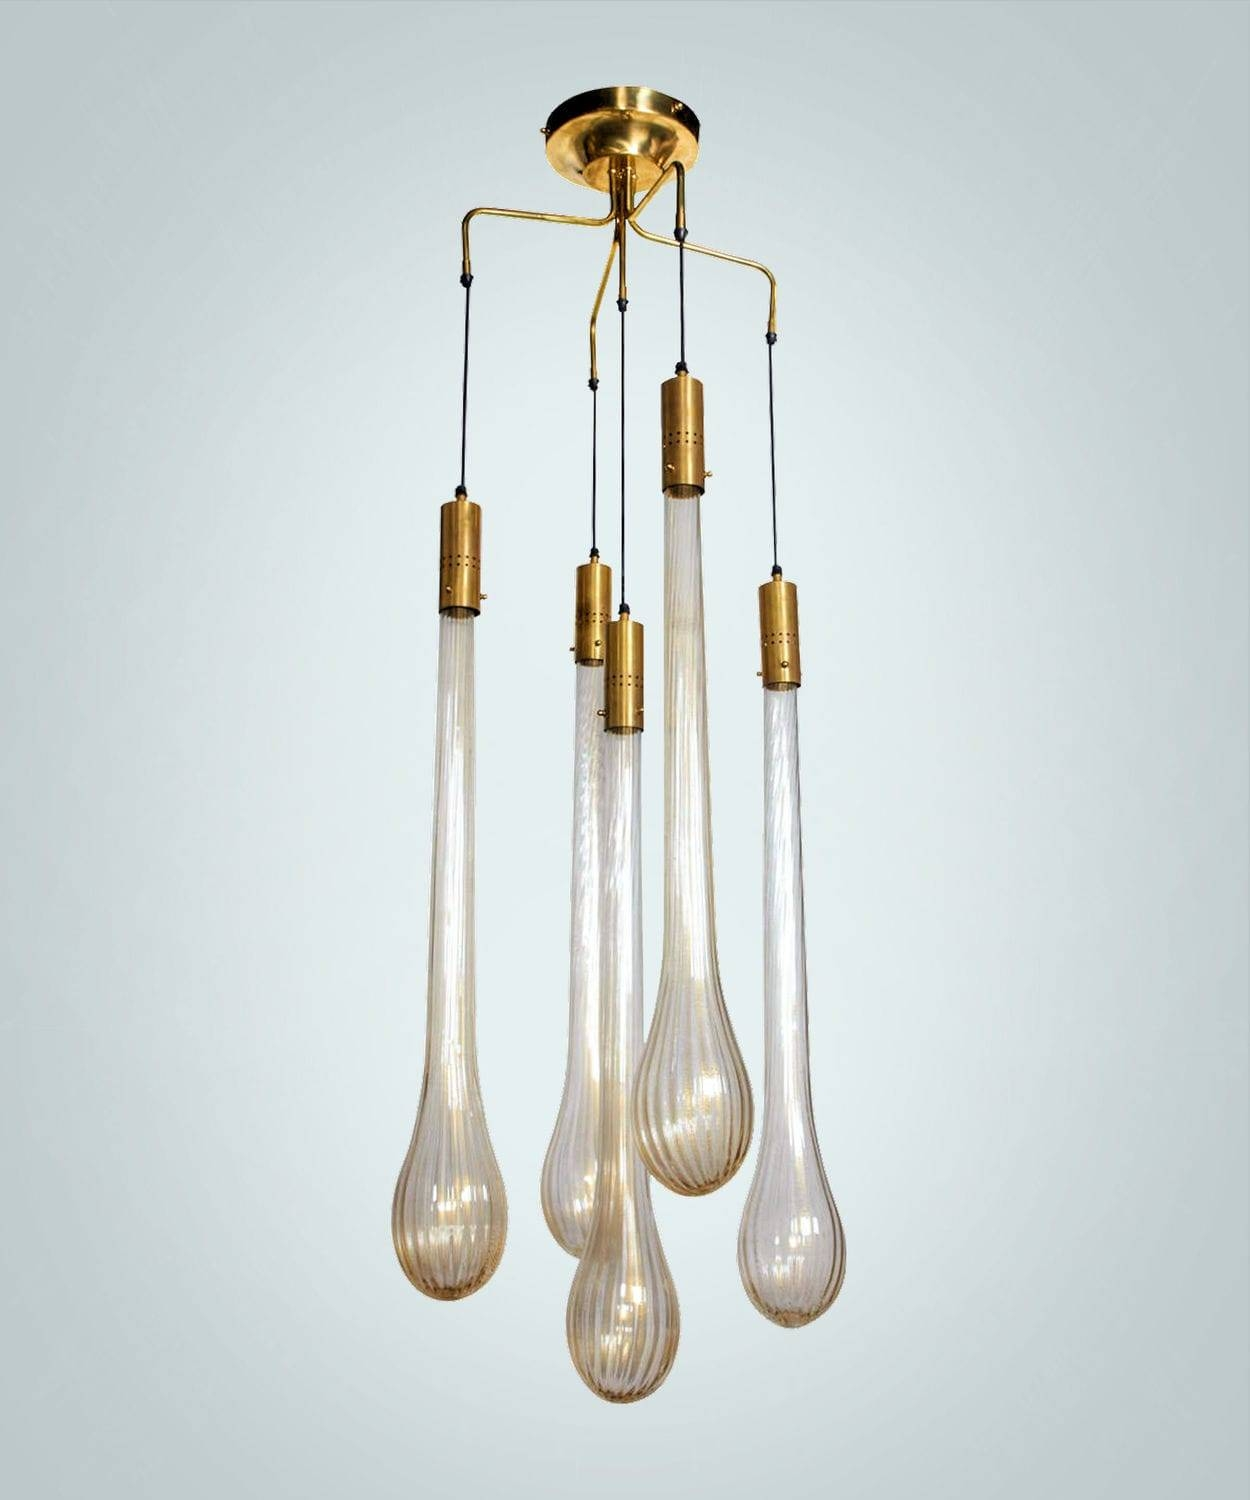 Pendant Lamp / Original Design / Blown Glass / Murano Glass - Drop with regard to Murano Glass Lighting Pendants (Image 13 of 15)